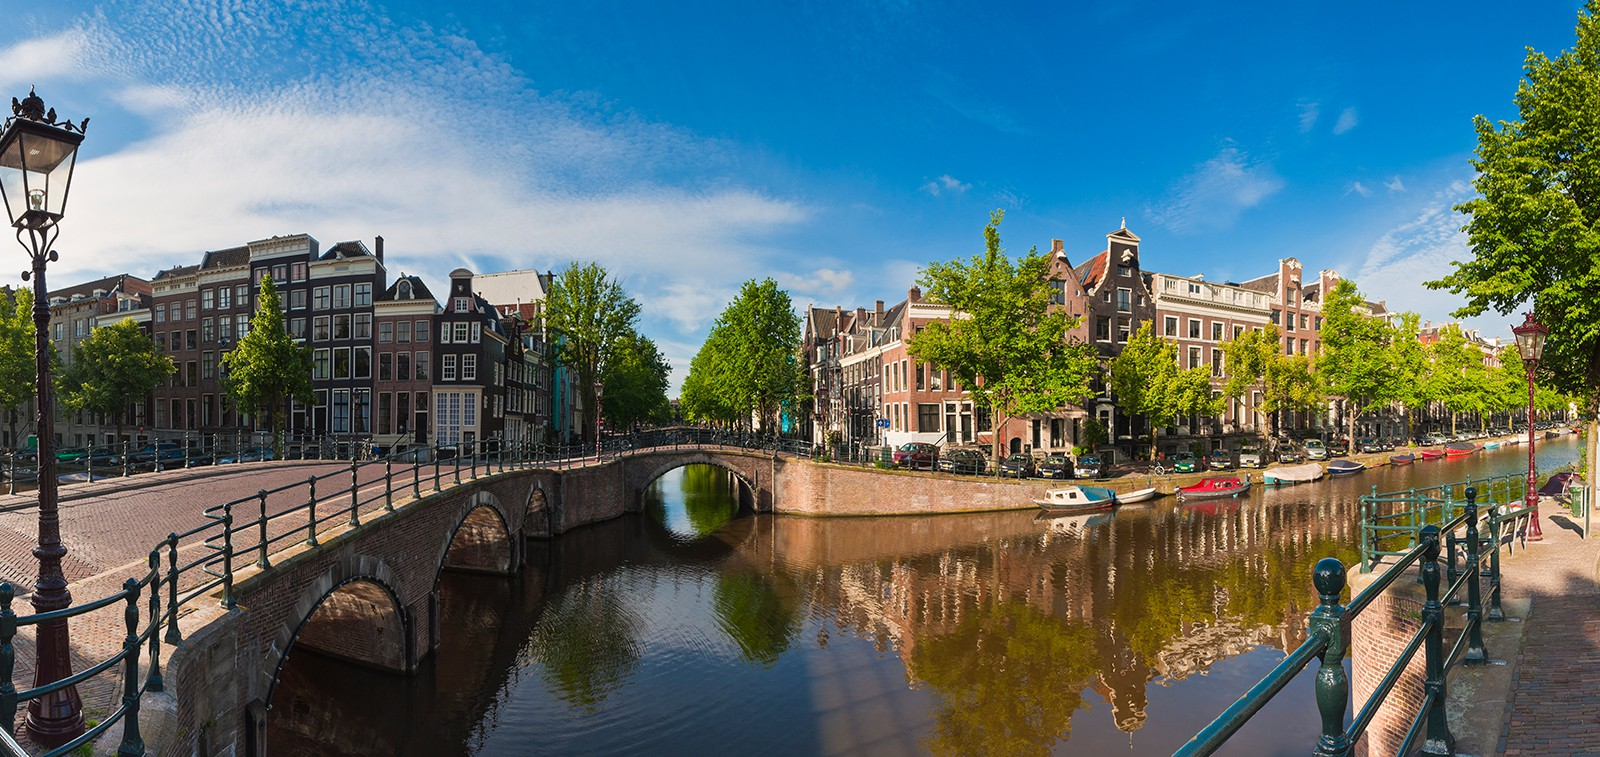 Cairo Amsterdam flights With Travco Holidays